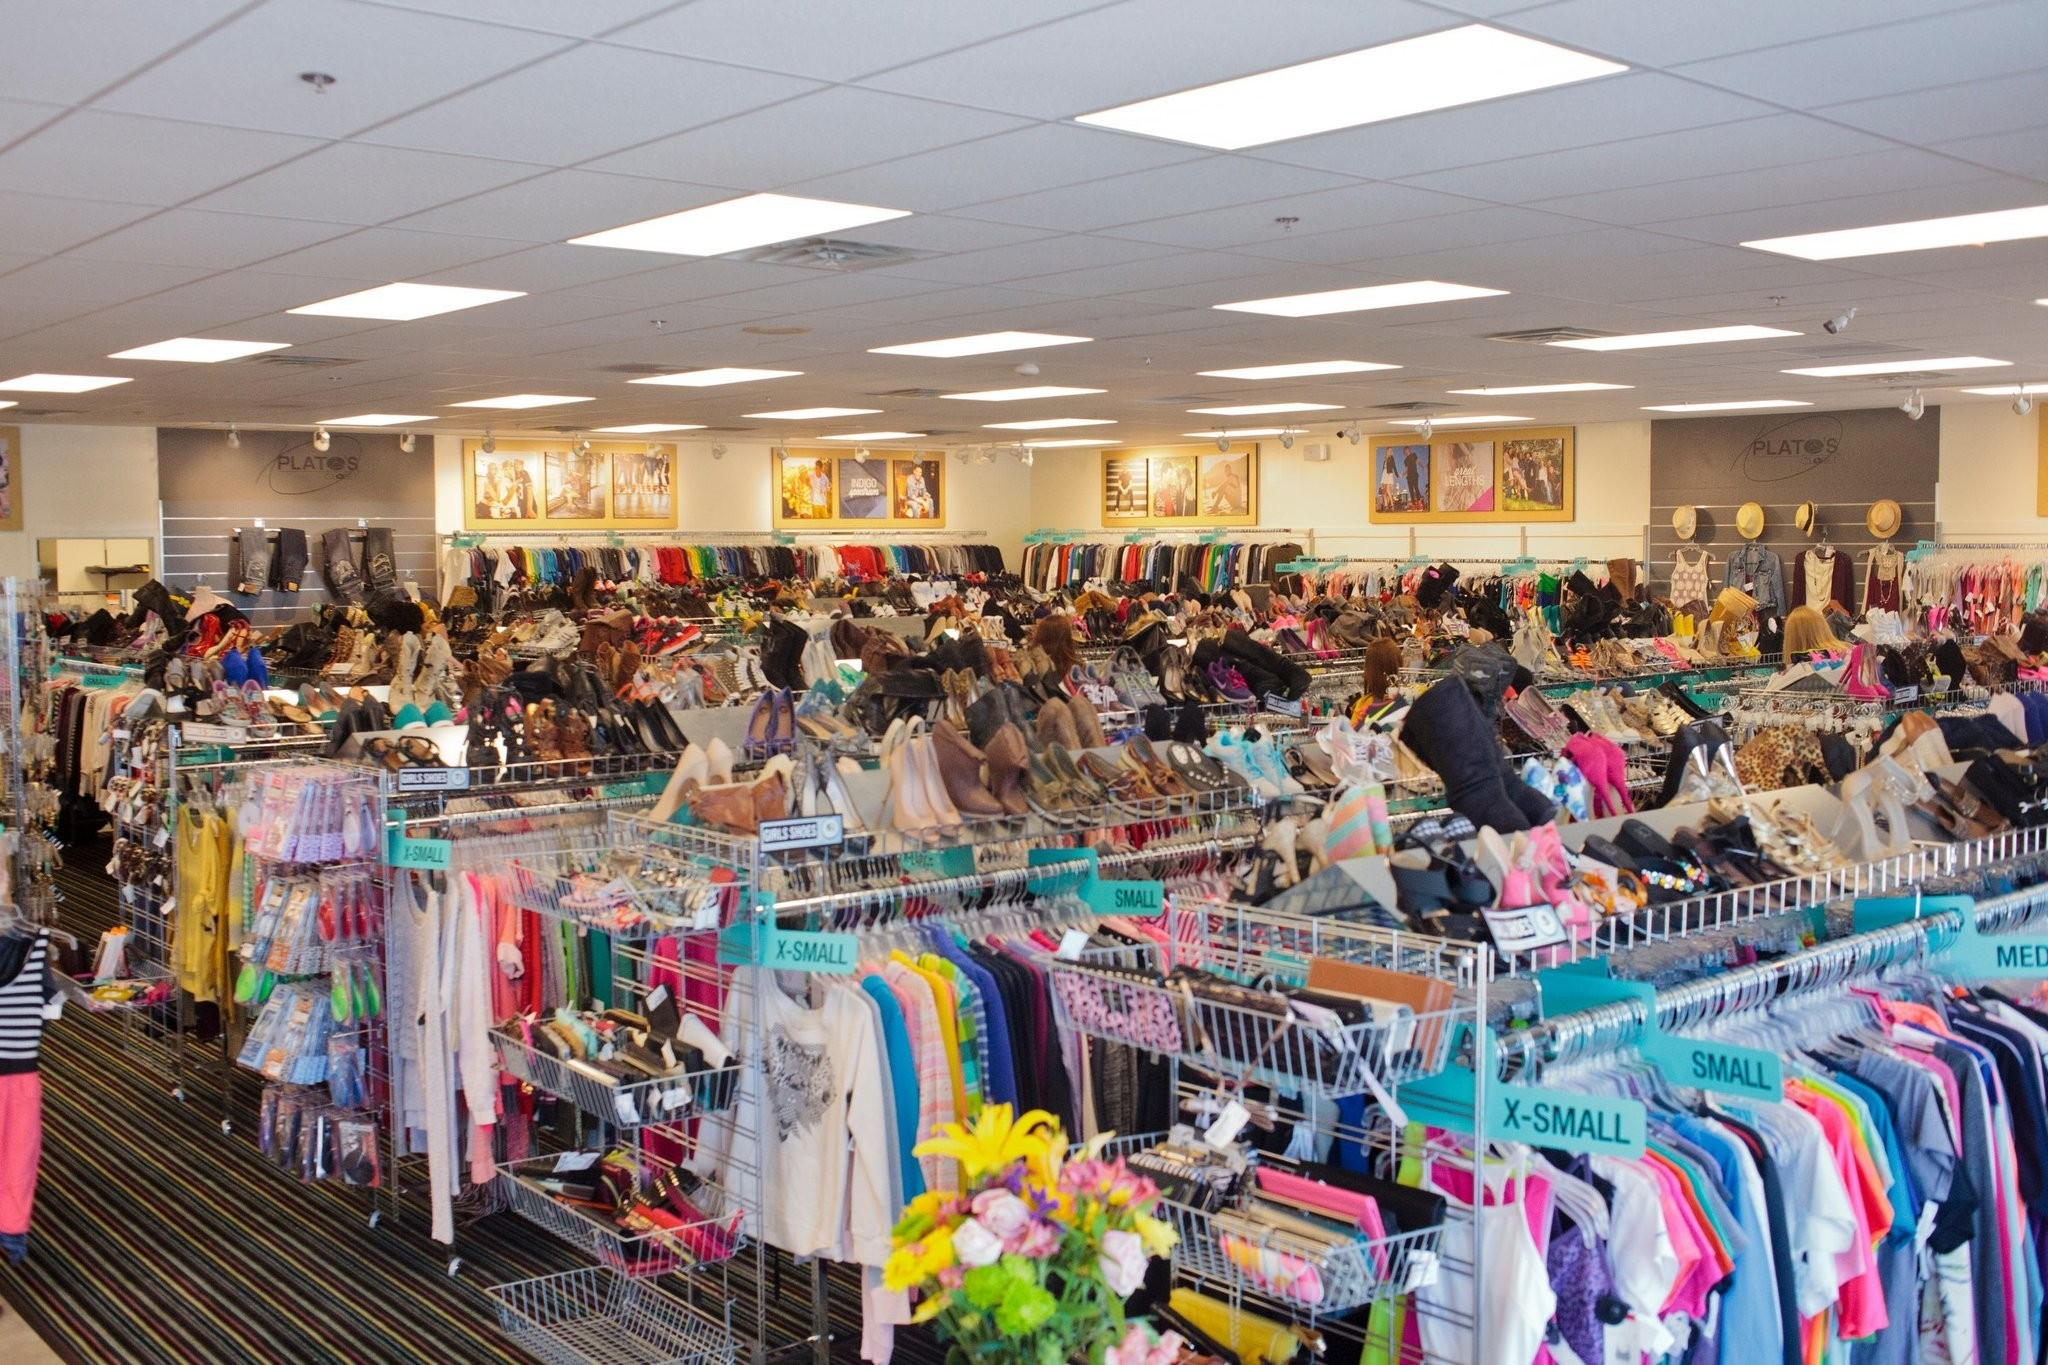 Plans For Plato S Closet In Jackson Expected To Materialize